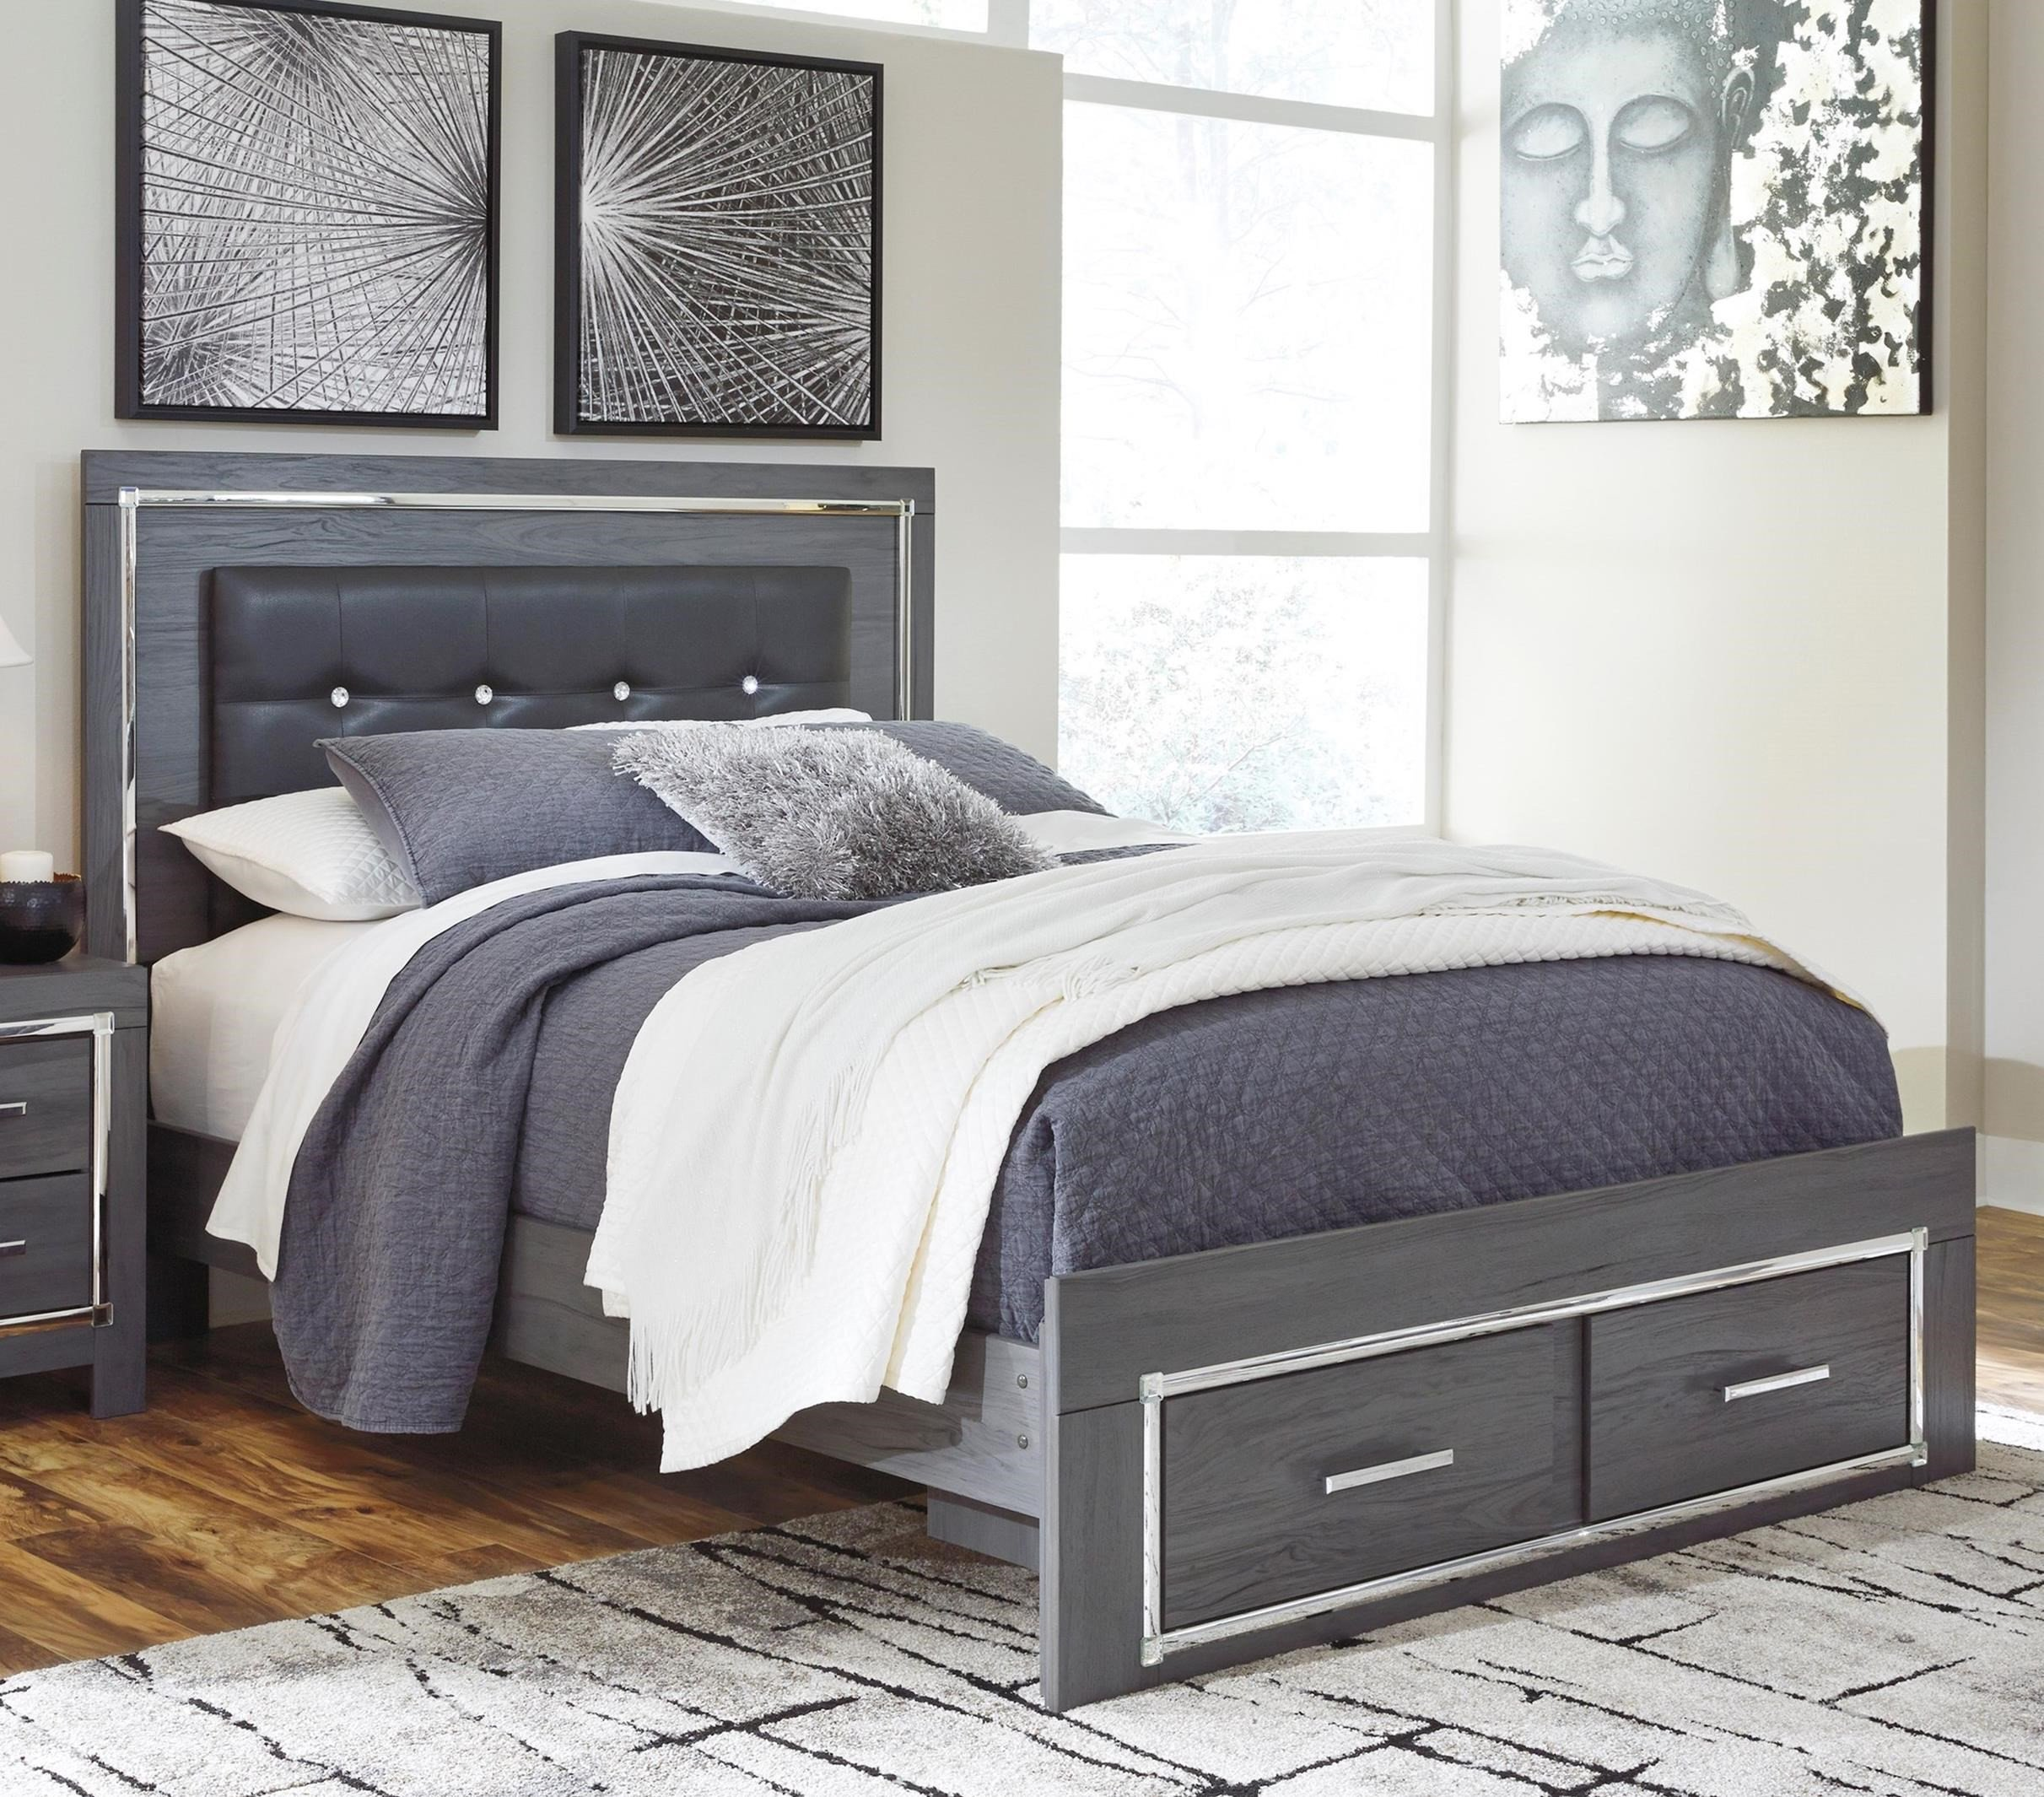 Ashley Bedroom Furniture Sale Beautiful Lodana Queen Upholstered Bed